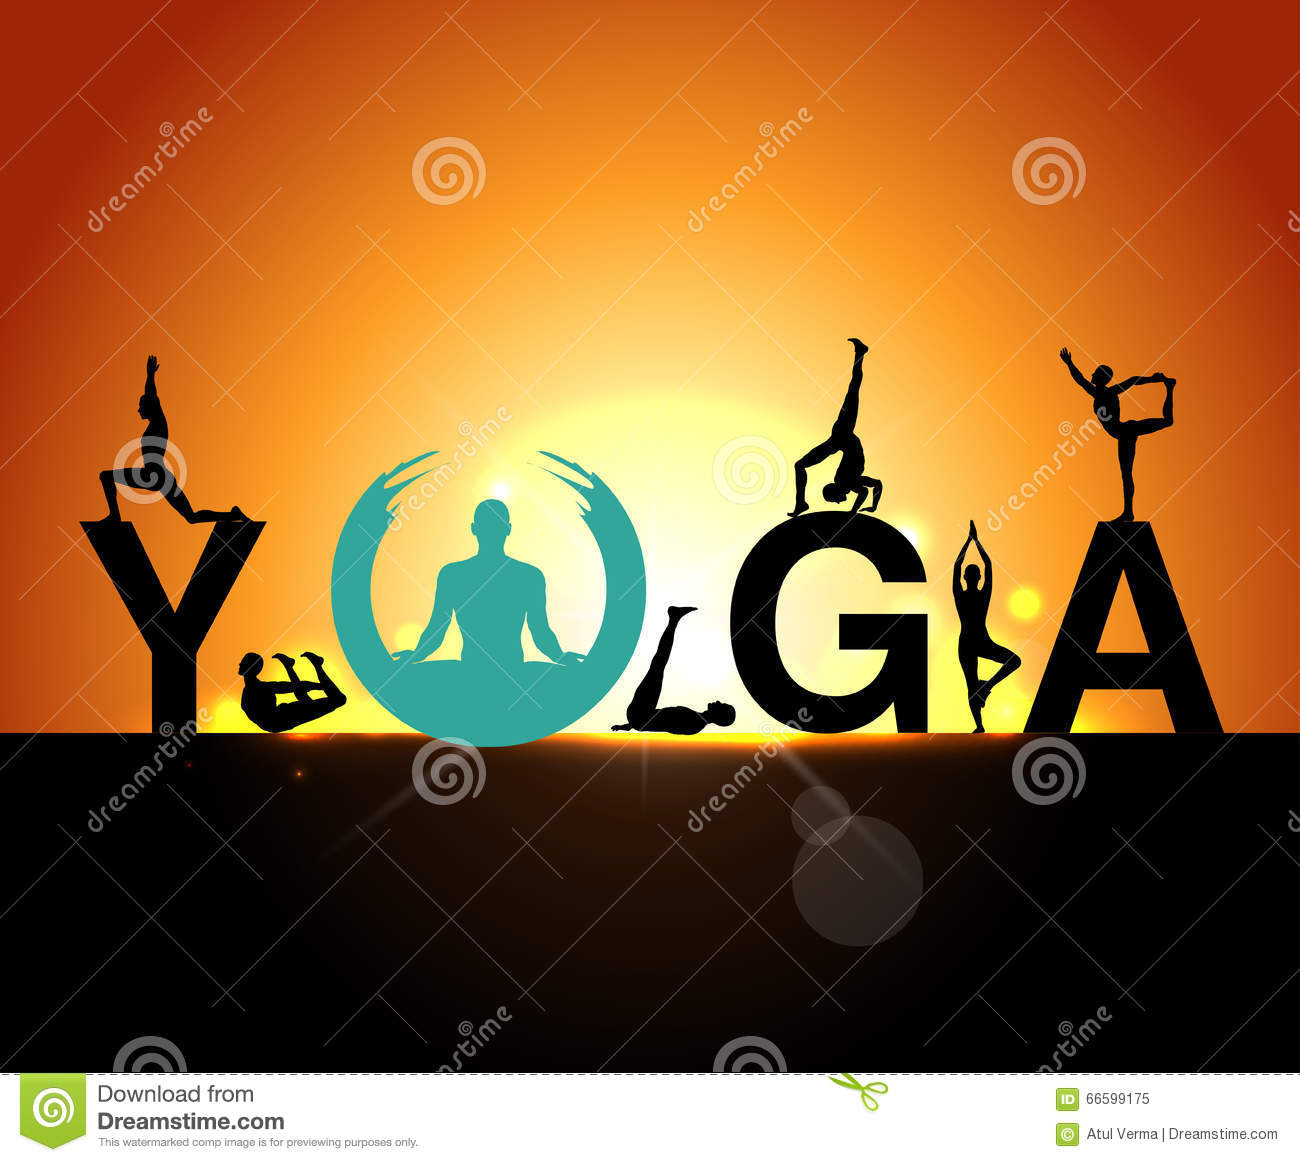 Yoga Poses Silhouettes Cartoon Vector Cartoondealer Com